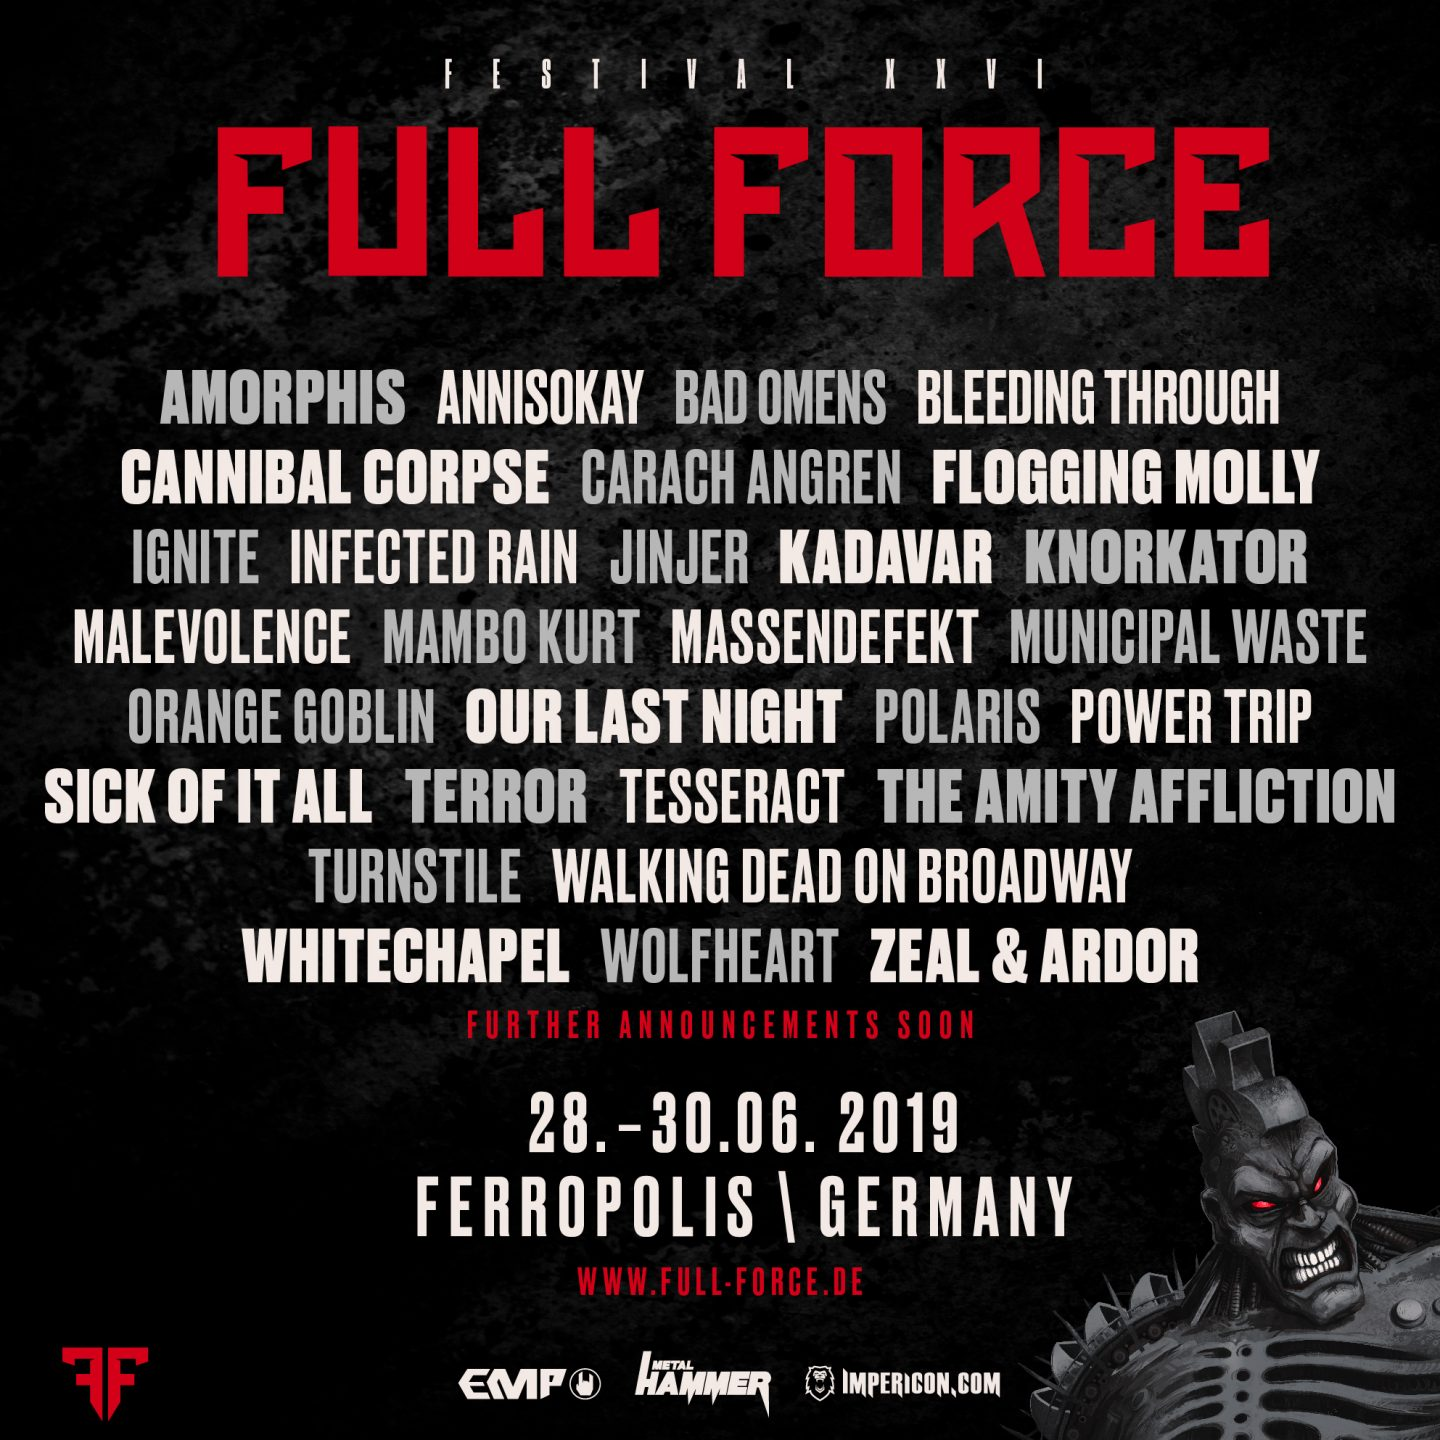 FULL FORCE FESTIVAL 2019 - THE FIRST BANDS OFFICIALLY